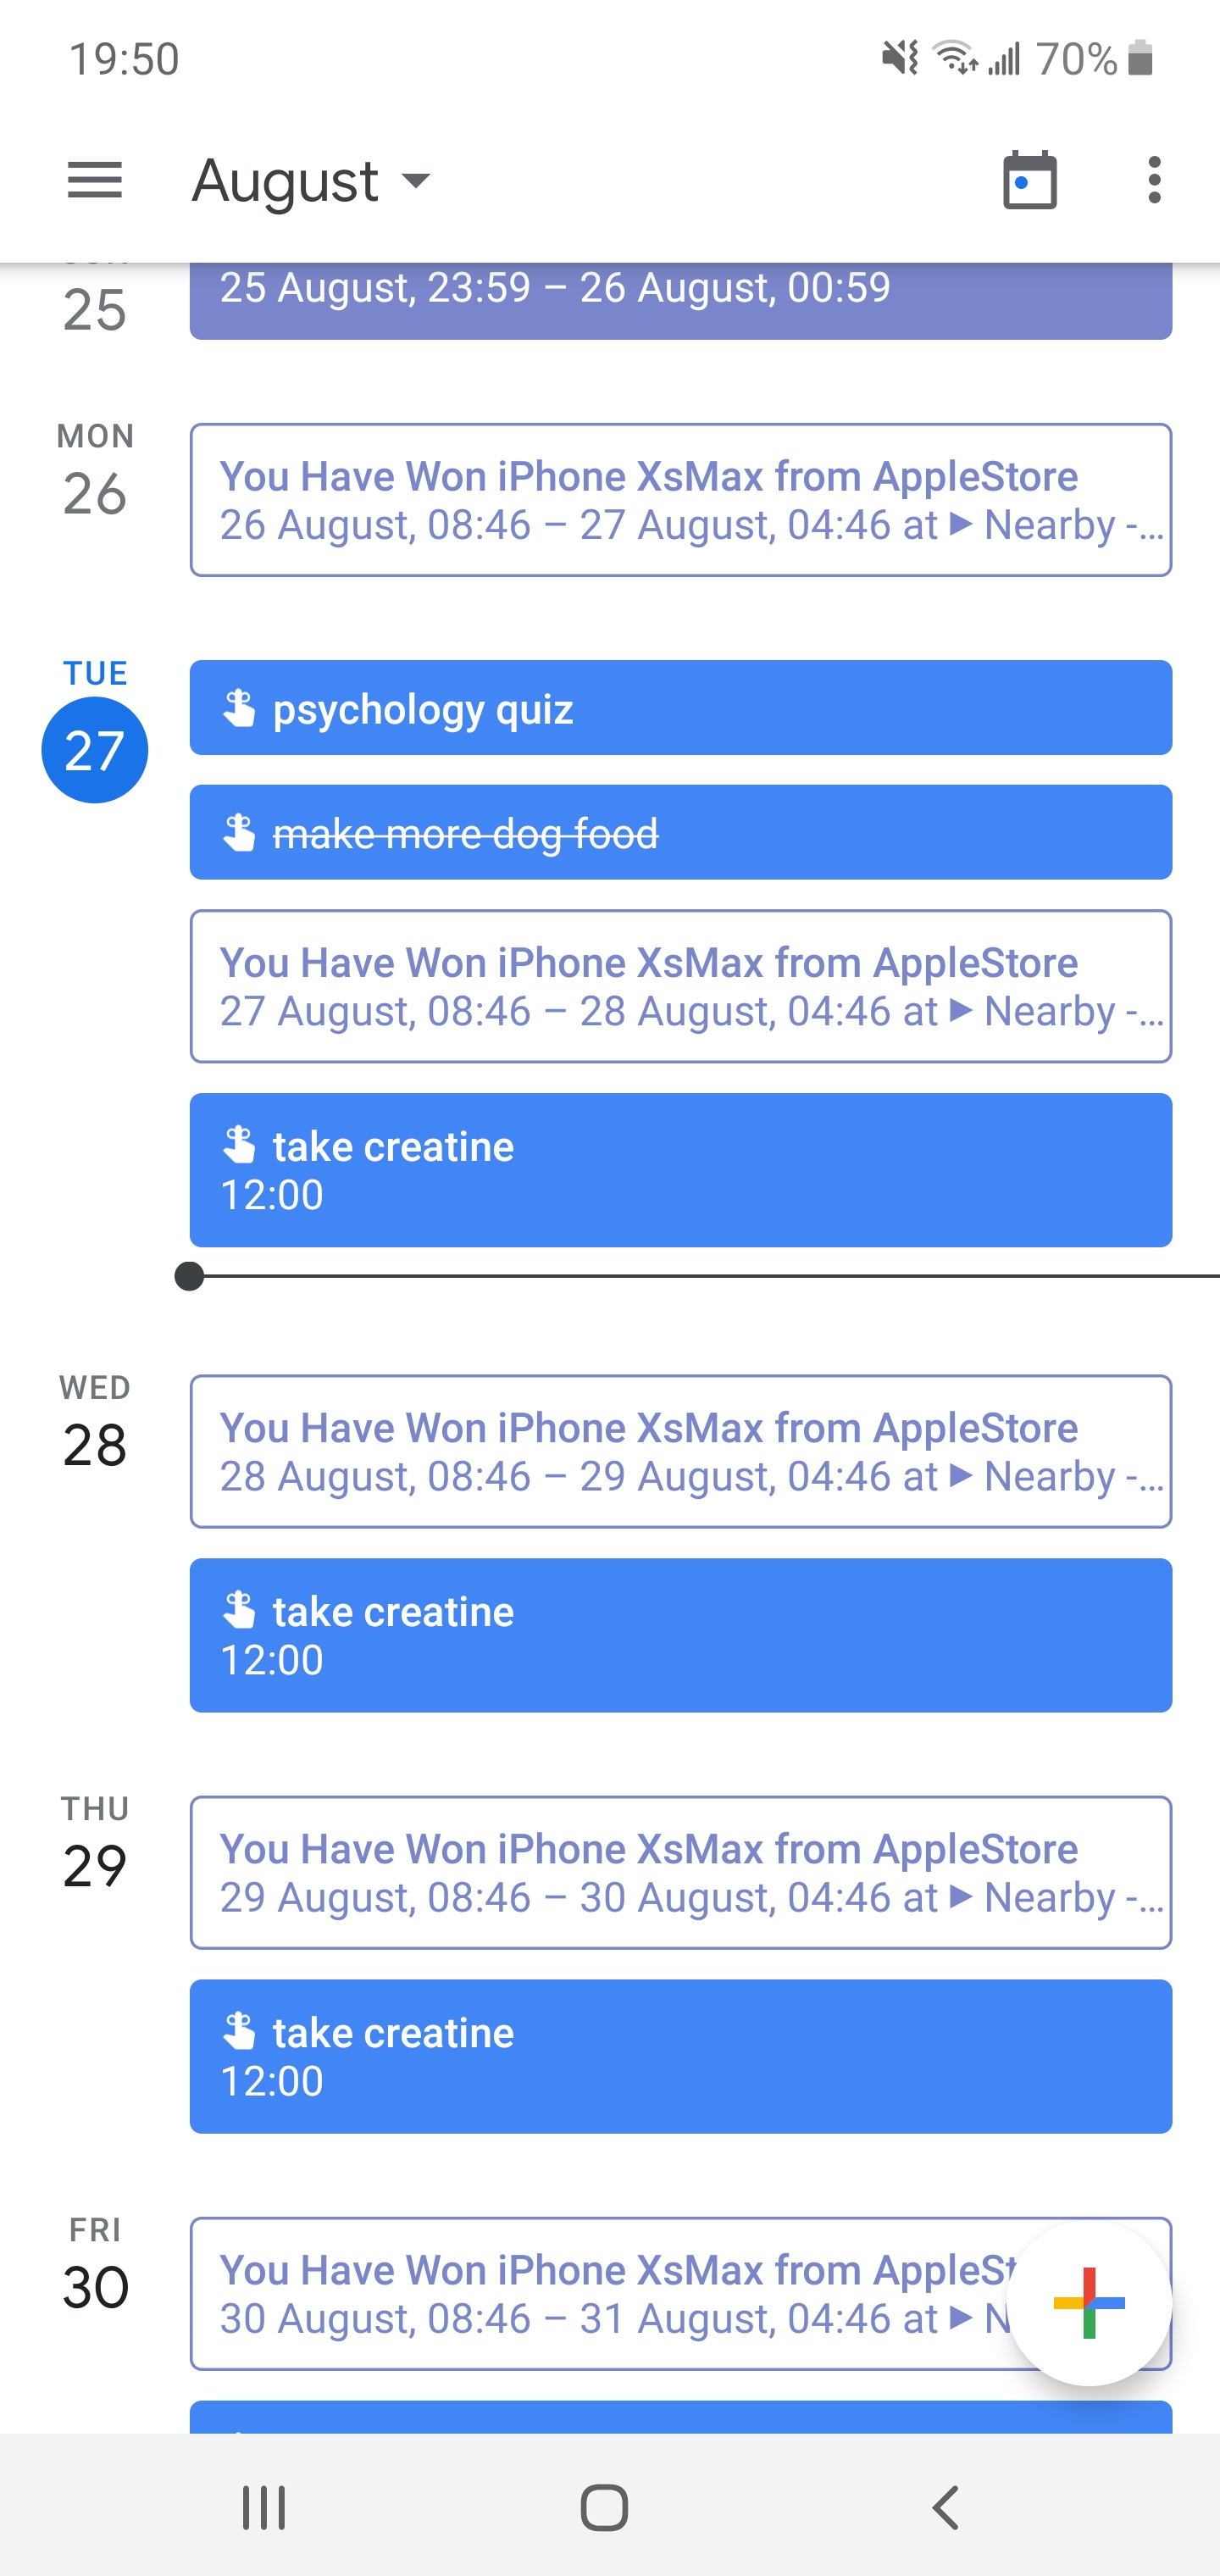 Why Is My Google Calendar Doing This? Help Me Stop It Please within Max 30 Calendar